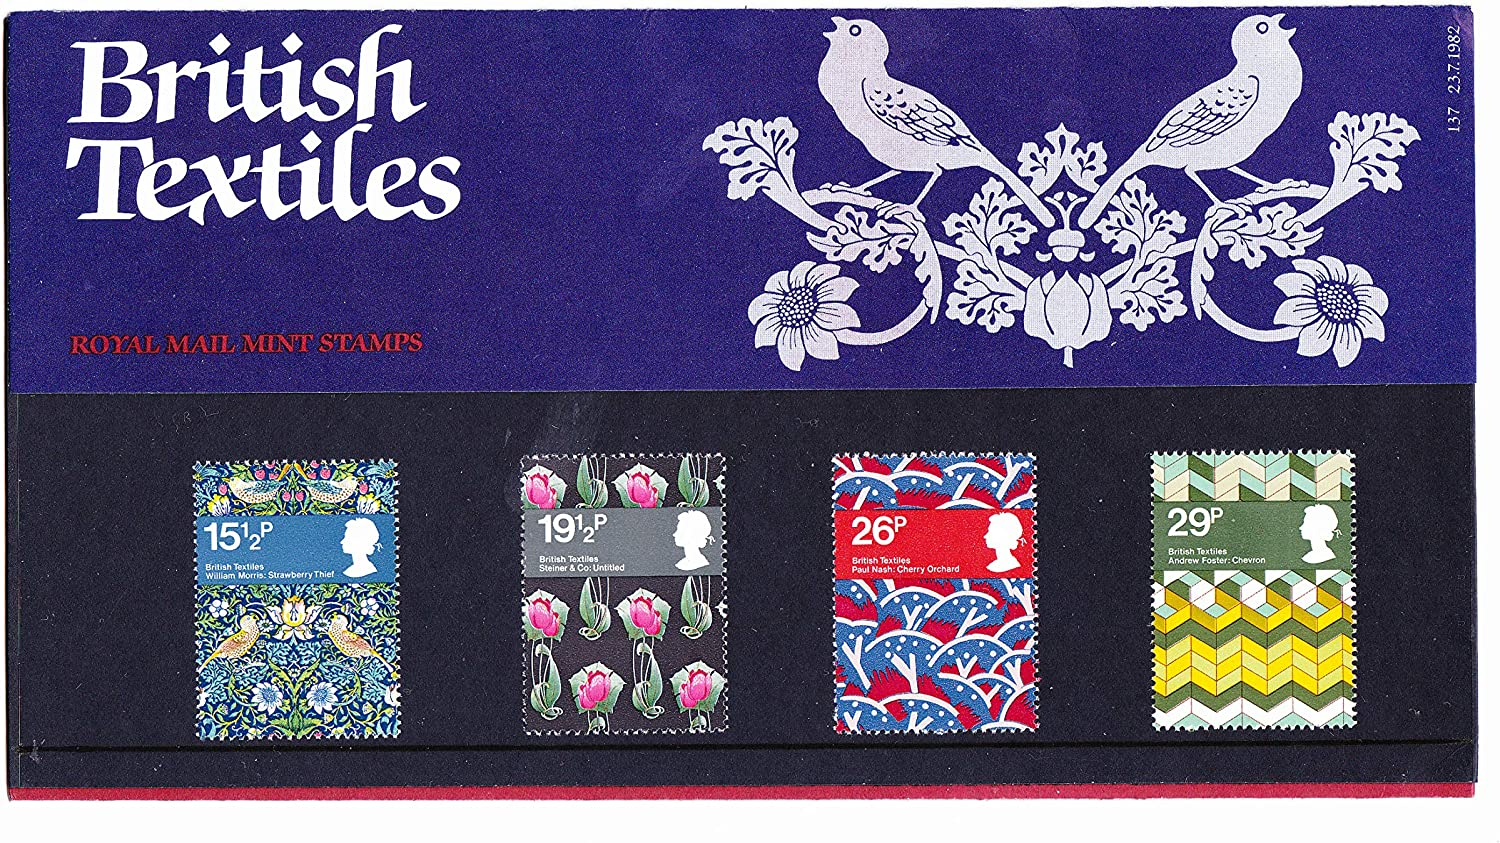 Europa Presentation Pack PP147 printed no. 171 Royal Mail Stamps by Royal Mail 1986 Nature Conservation